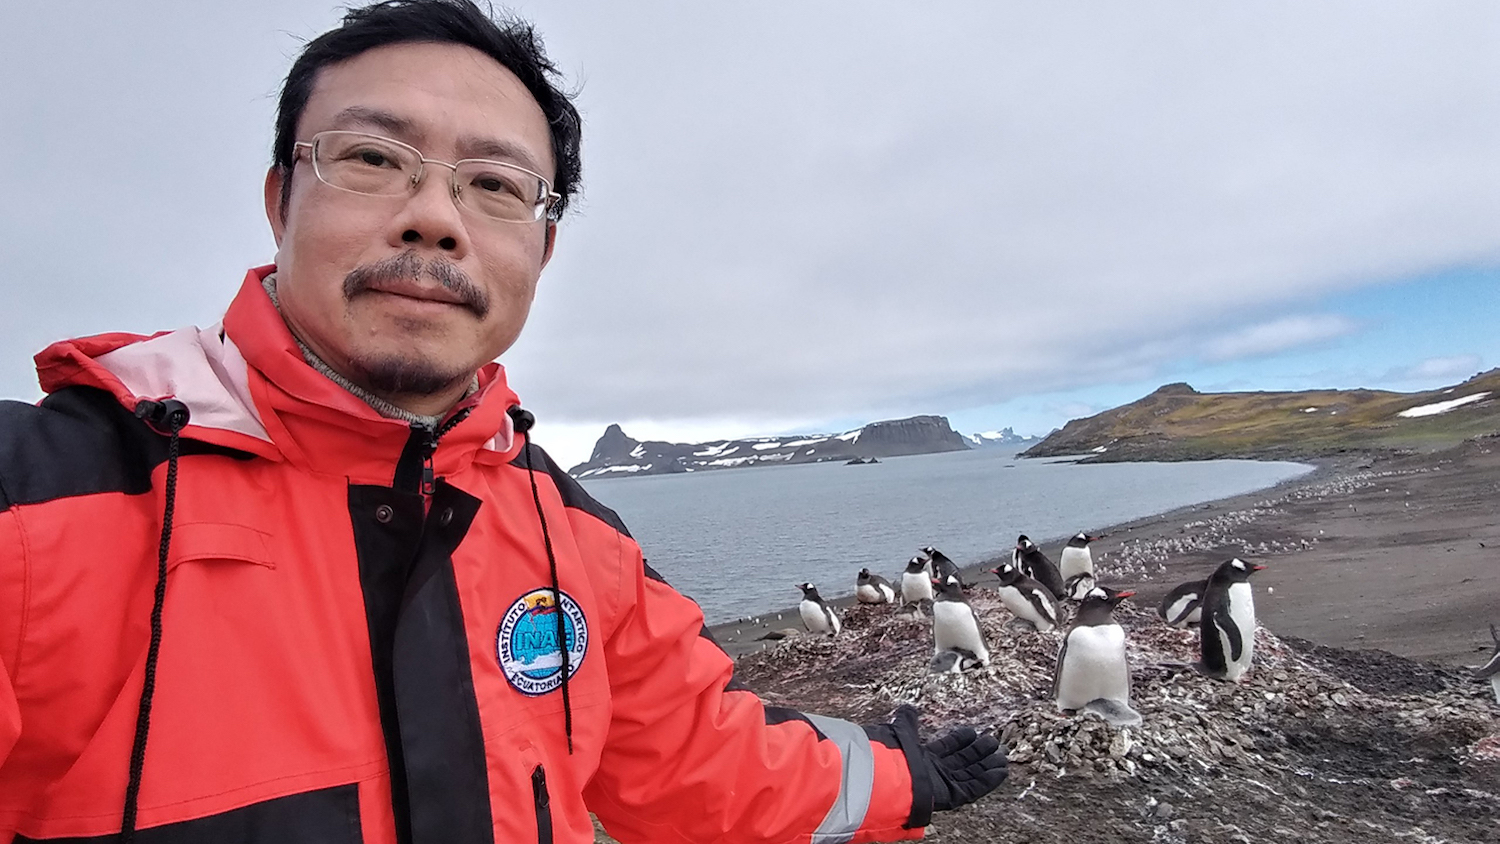 PRTM Research - From Yosemite to Antarctica, NC State Professor Examines Tourism Impacts in Protected Areas - Parks Recreation and Tourism Management NC State